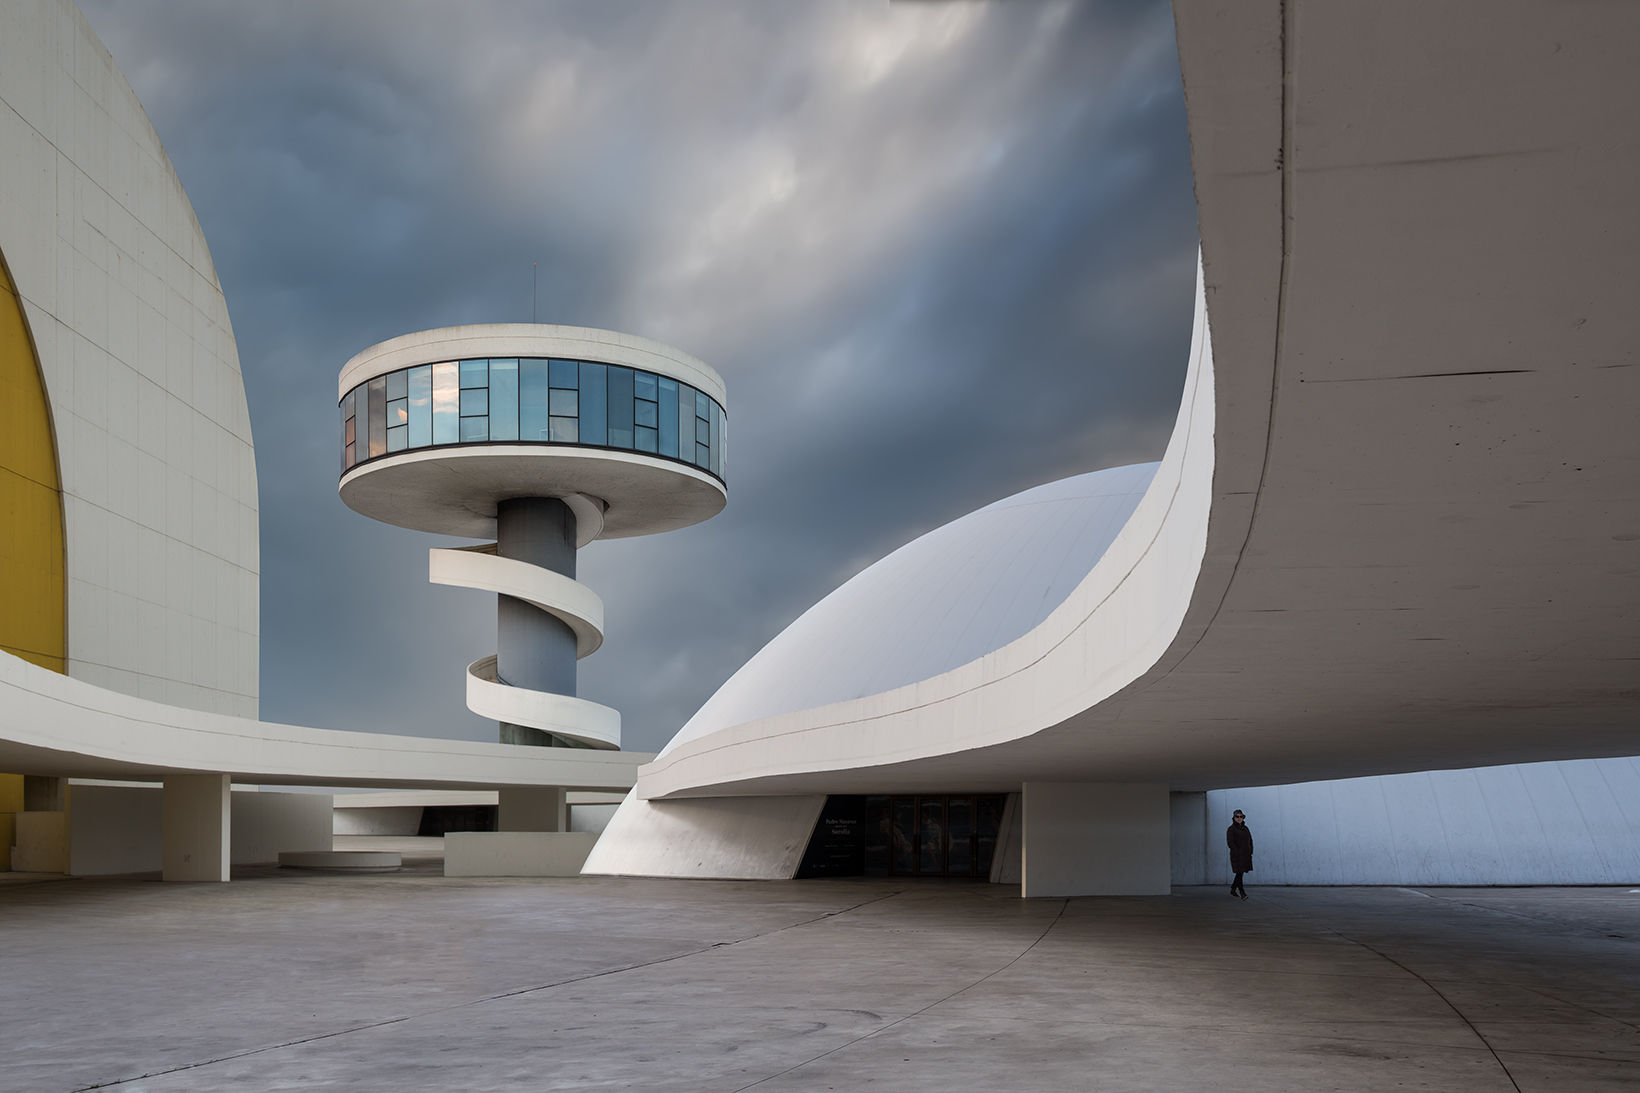 Architectural curves